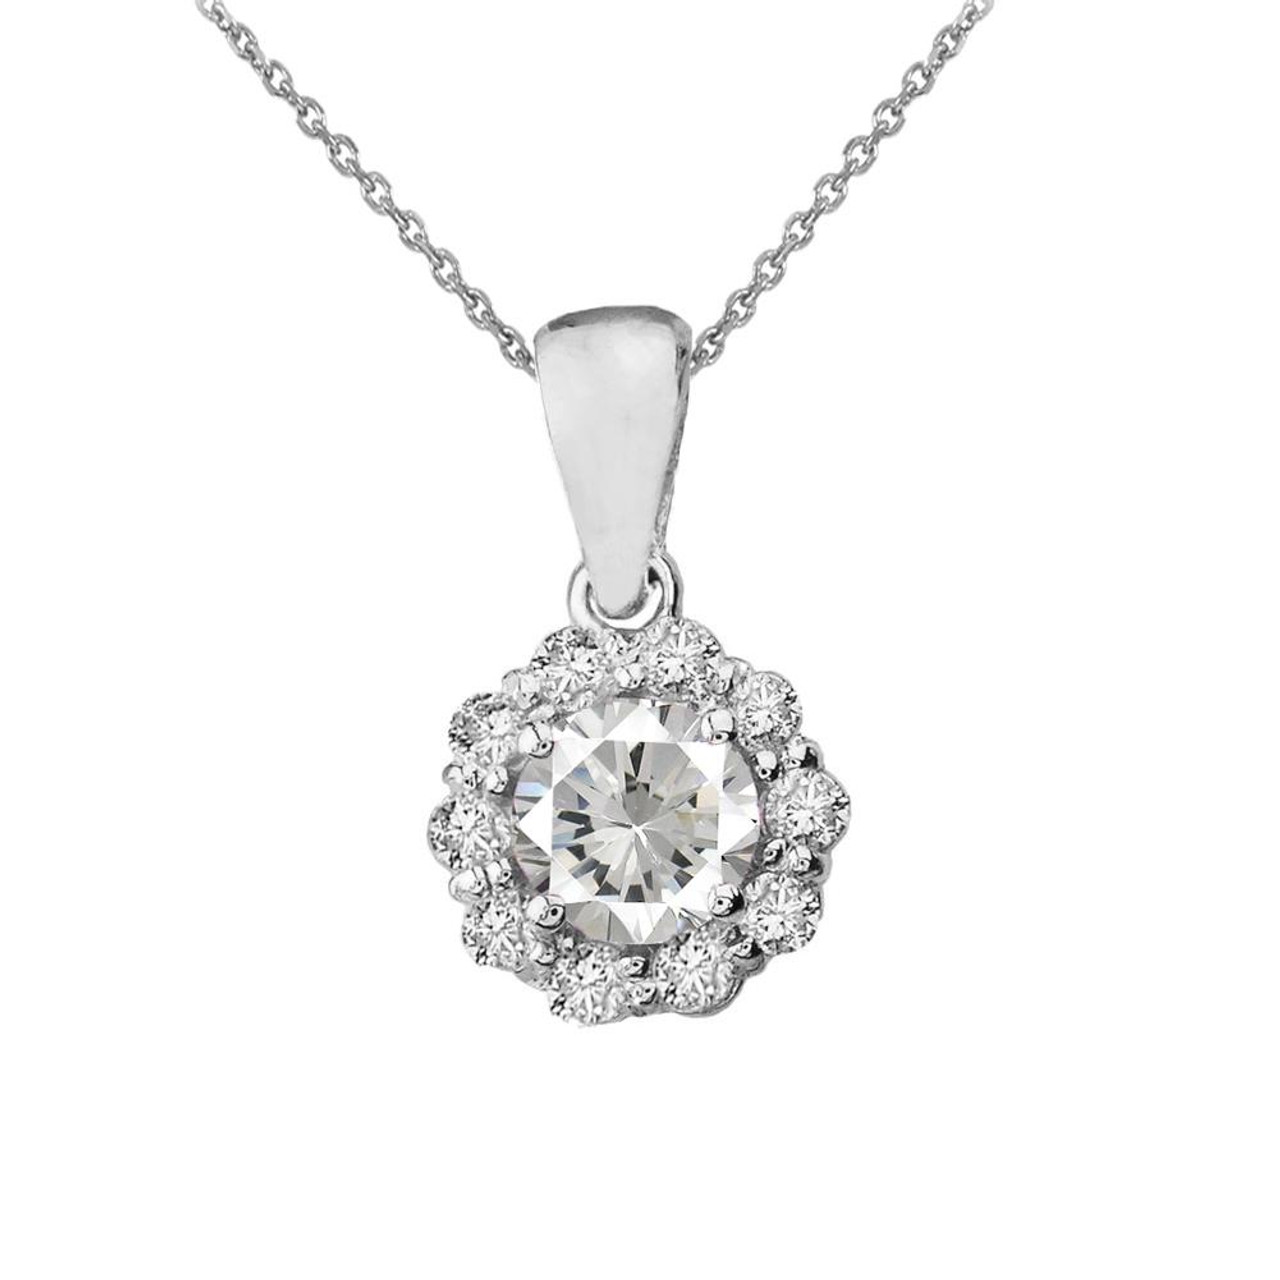 14k white gold dainty floral diamond center stone white topaz 14k white gold dainty floral diamond center stone white topaz pendant necklace aloadofball Choice Image